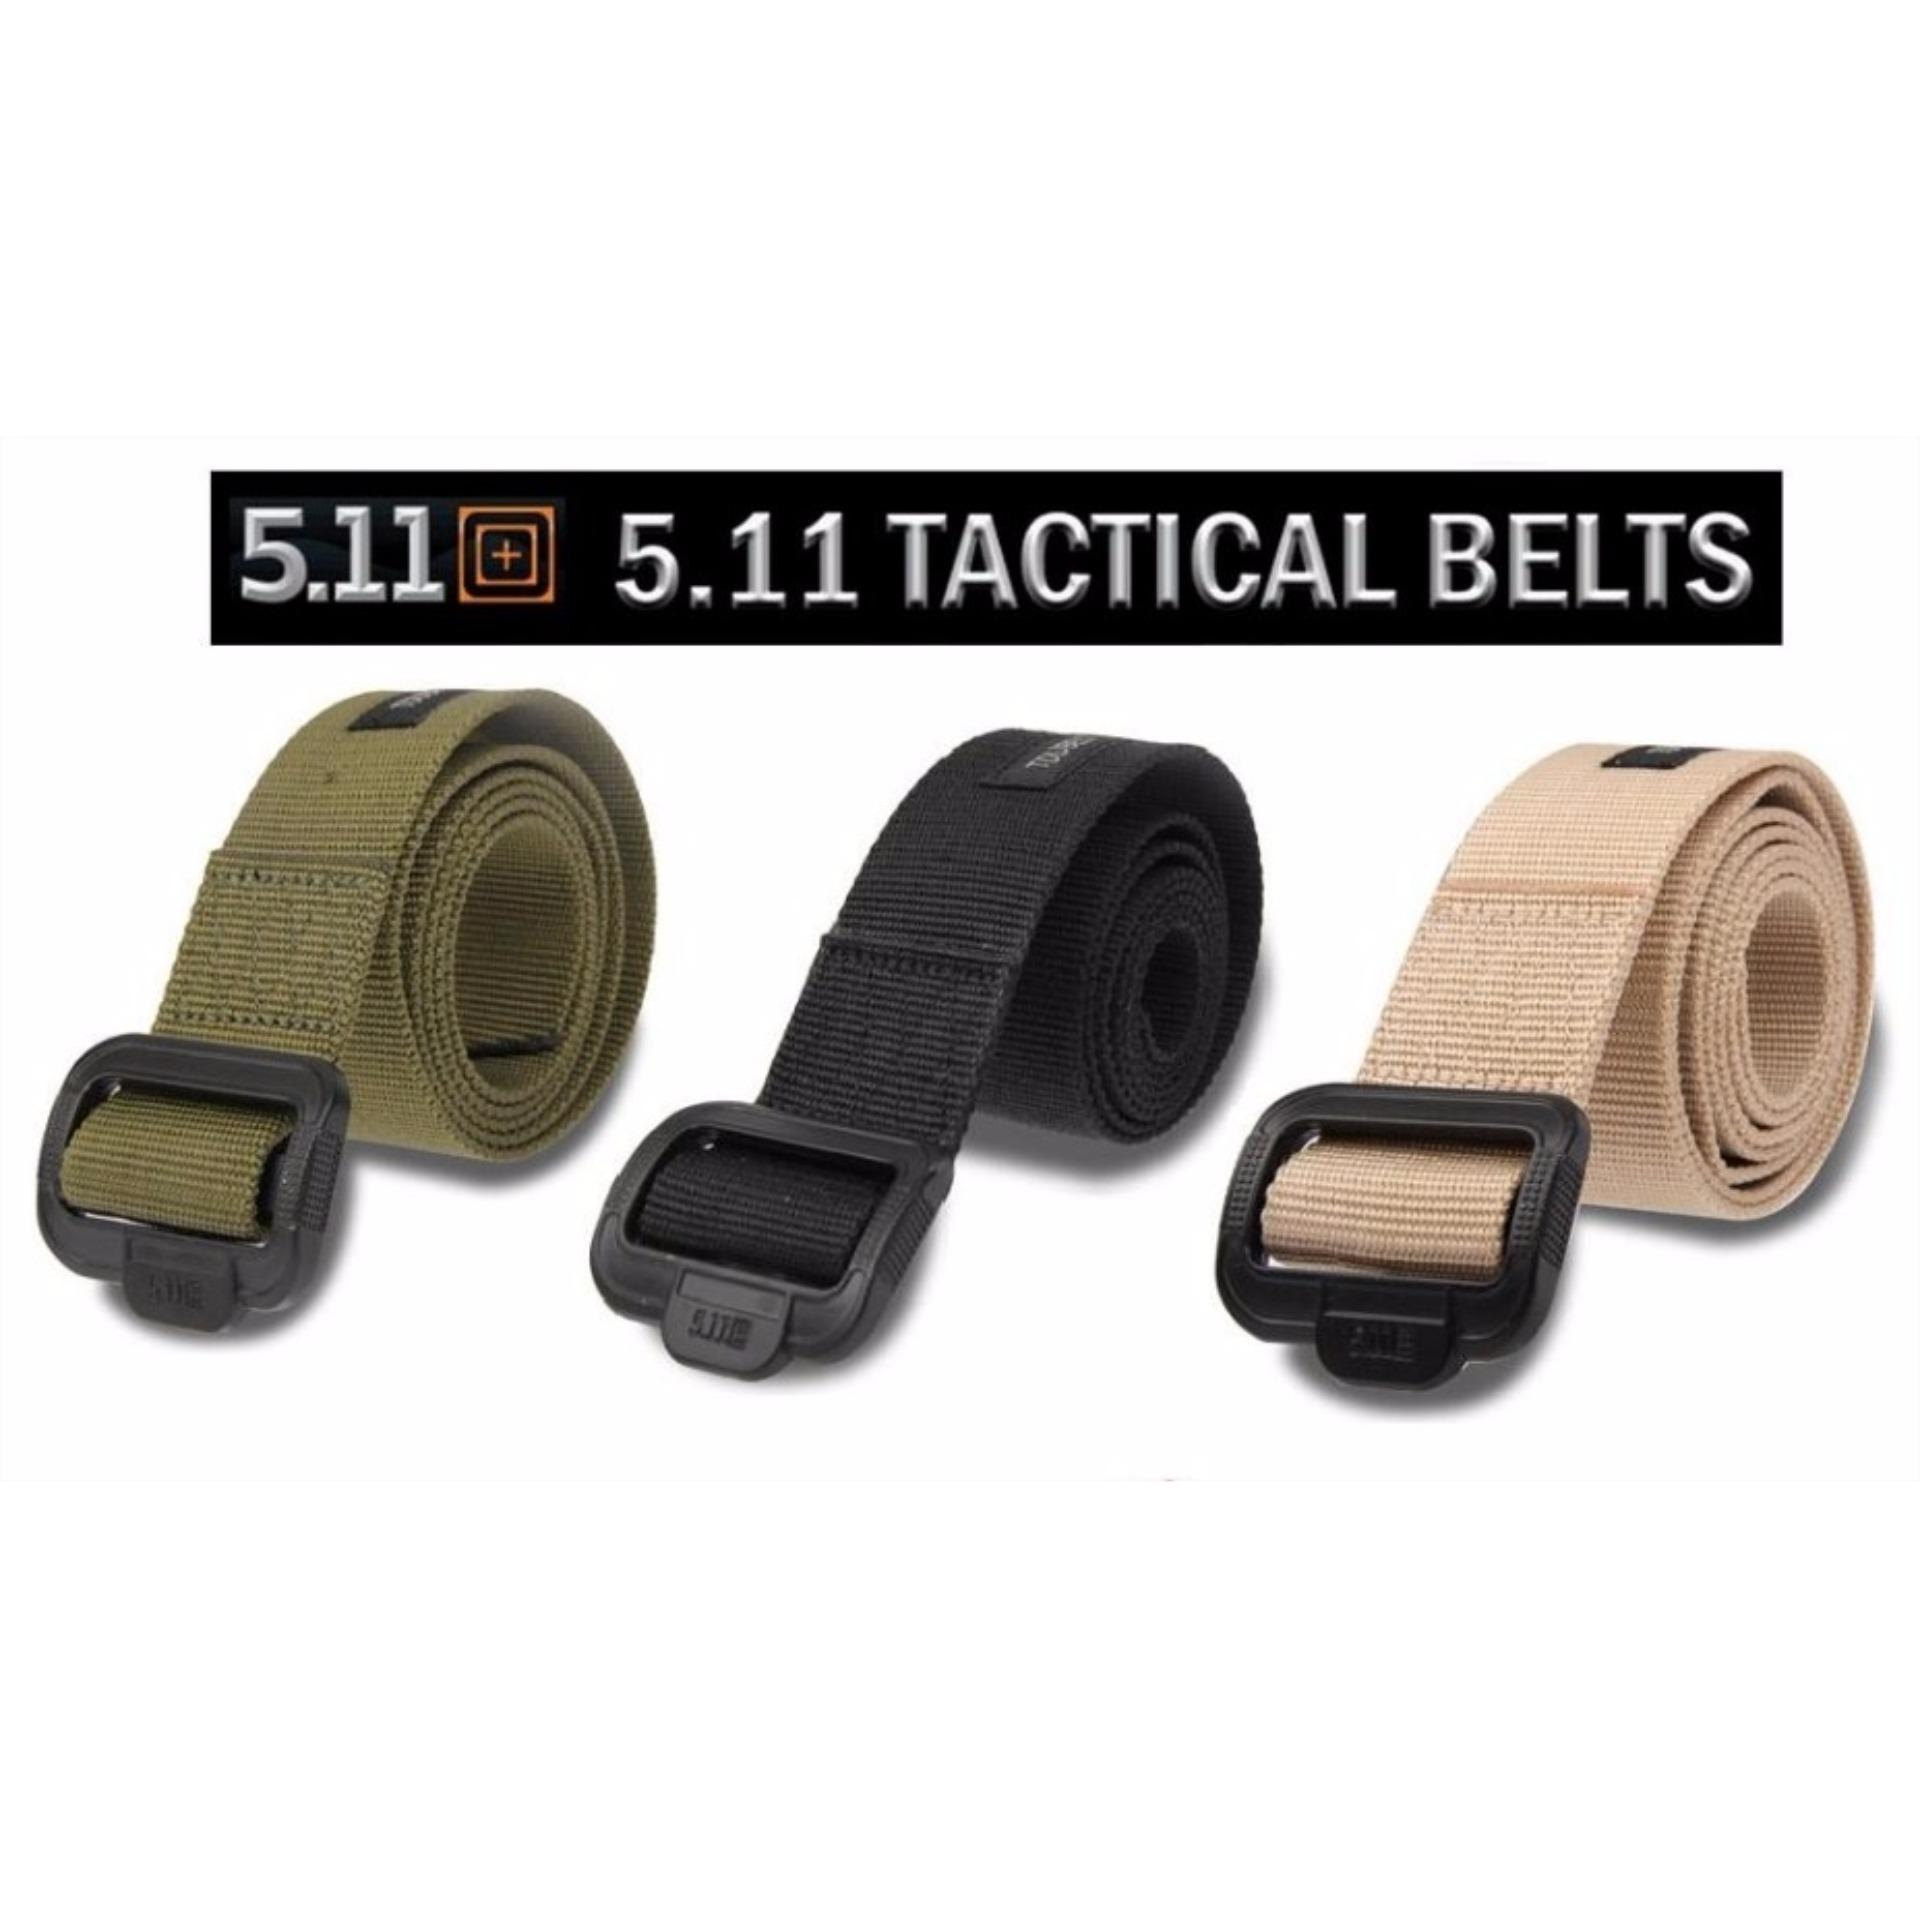 Harga Belt Tactical Series 511 Murah